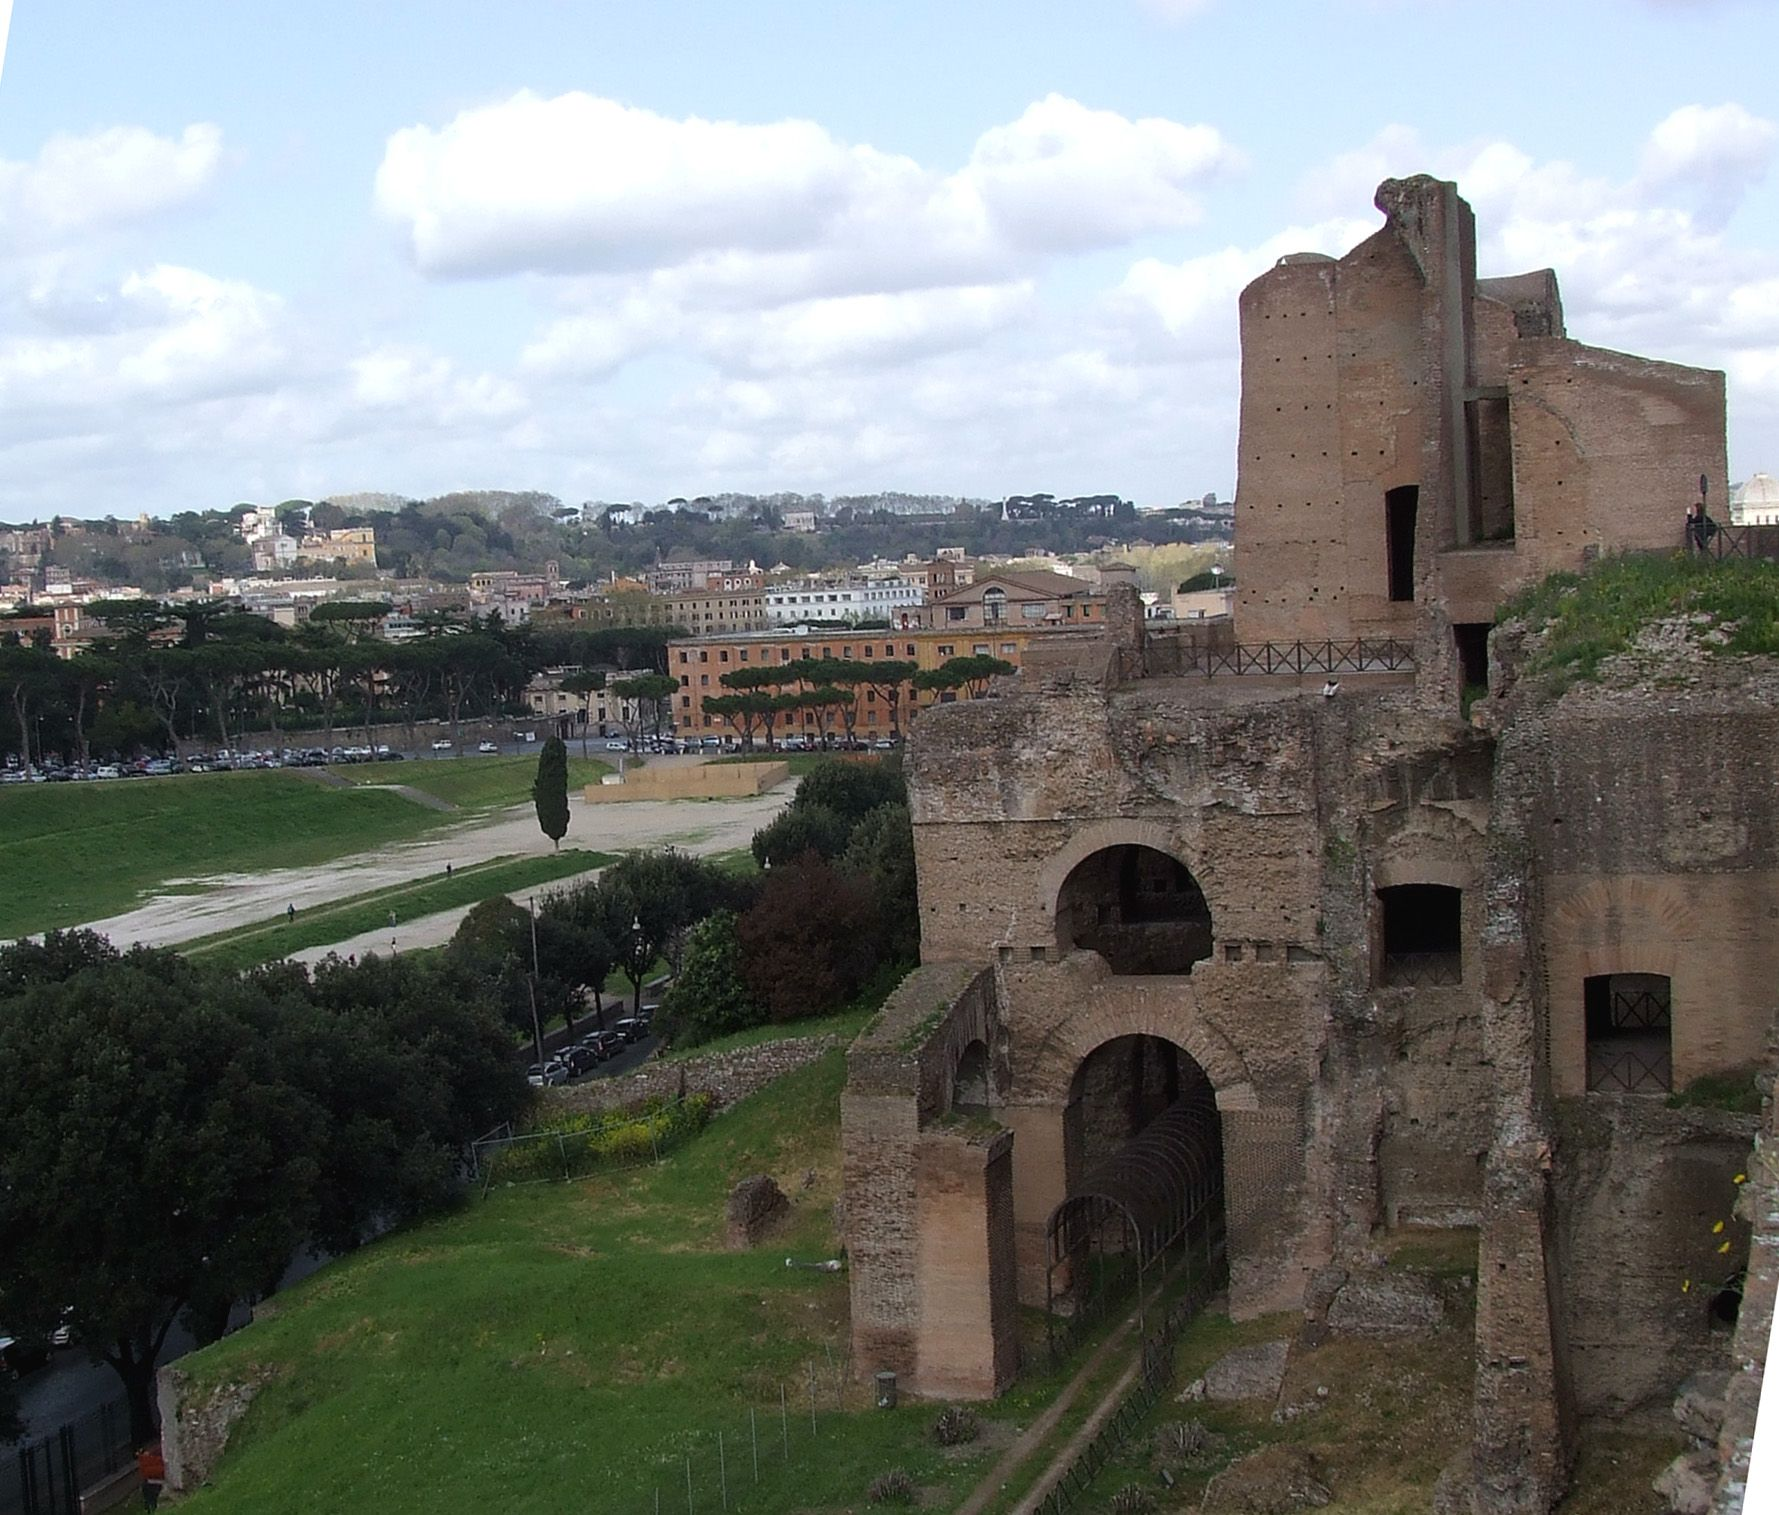 Part of the Imperial Palace complex on the Palatine Hill